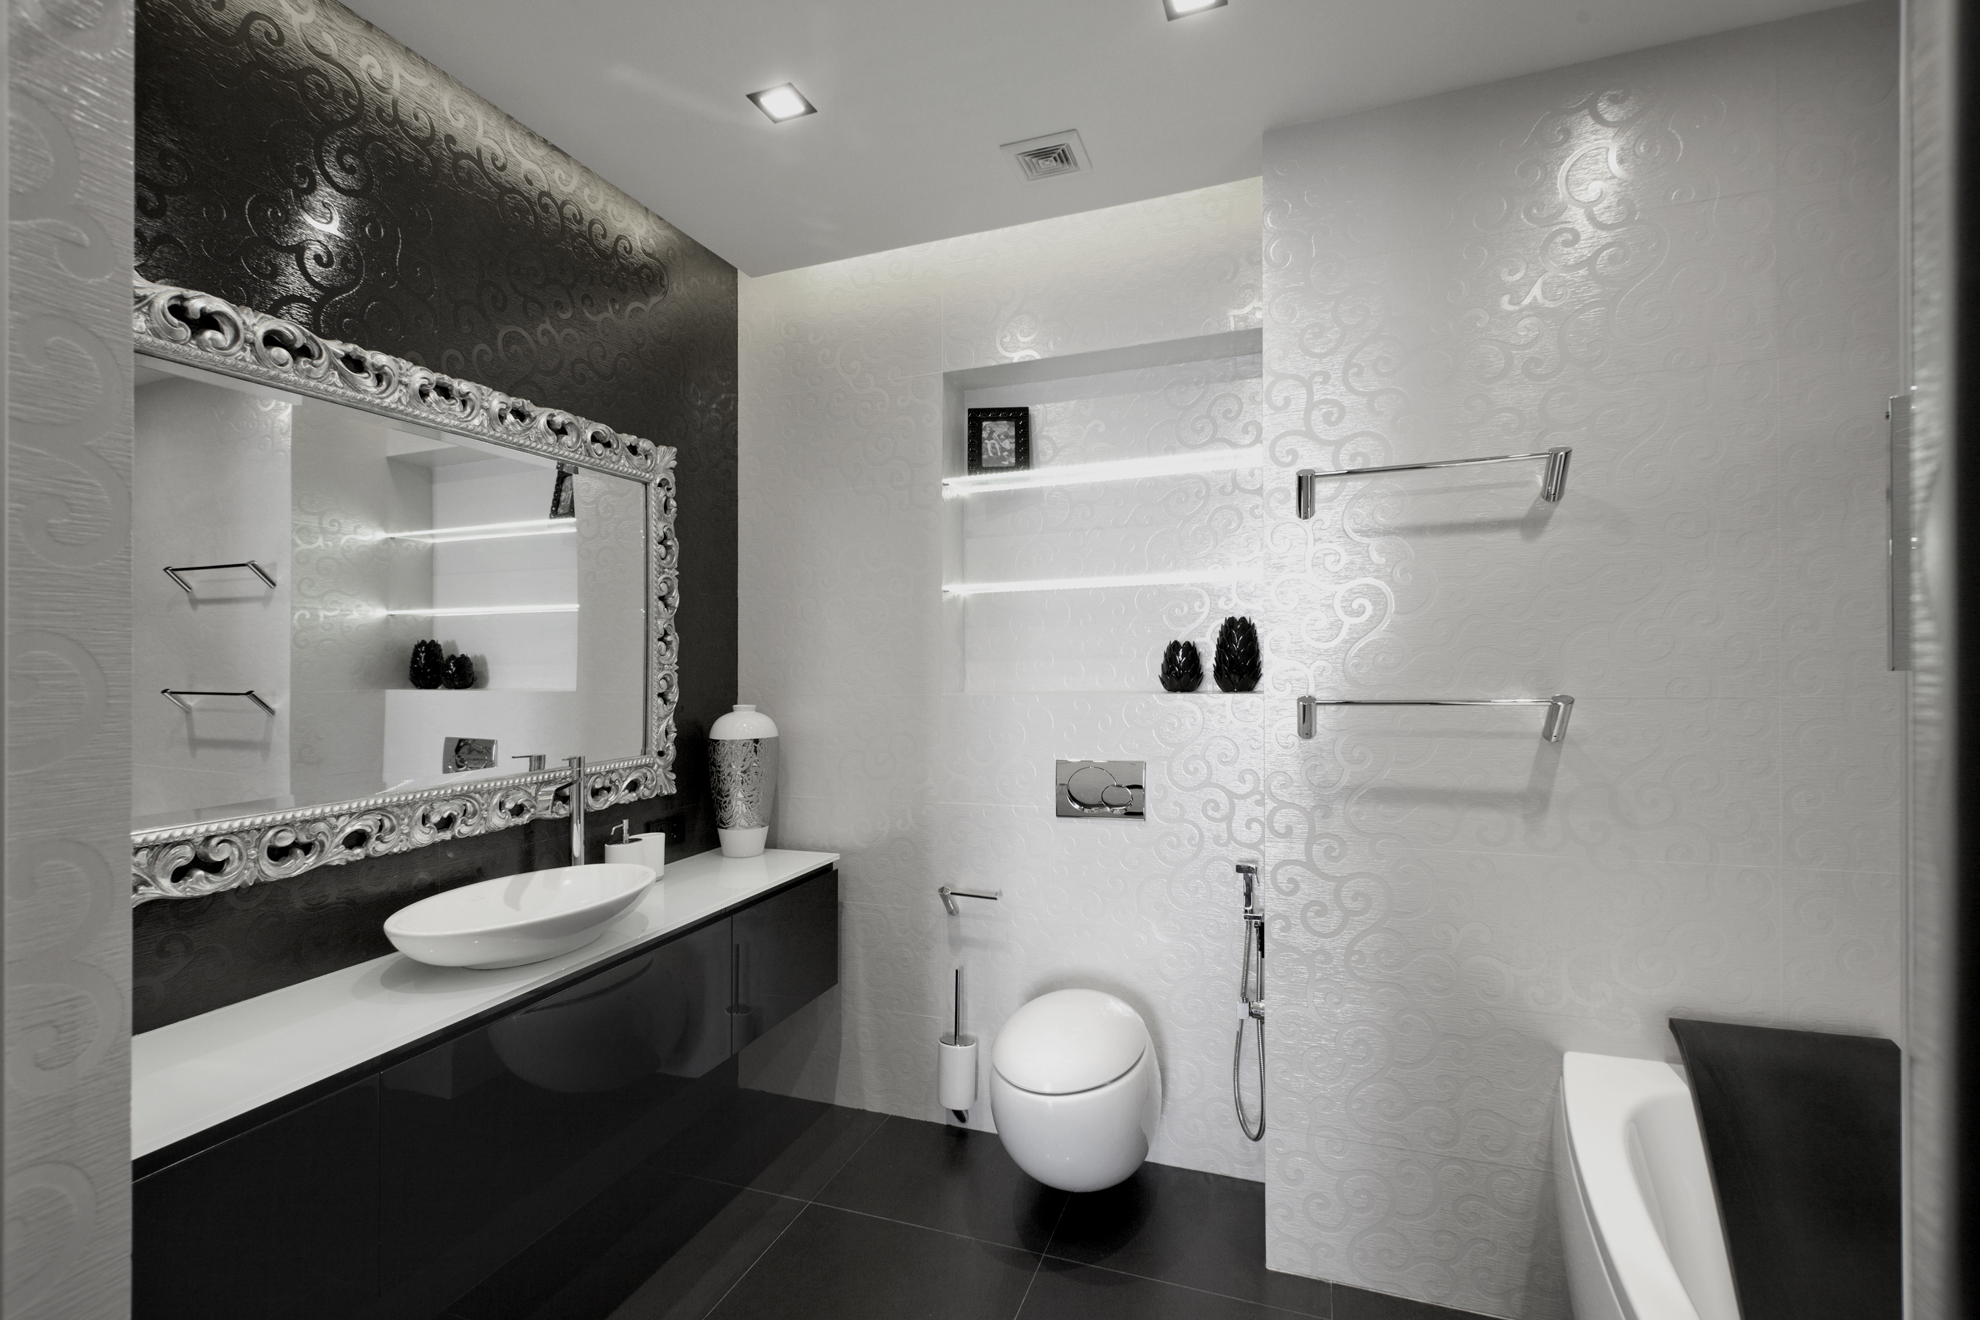 Bathroom ideas black and white - Black And White Bathroom Ideas Tiled